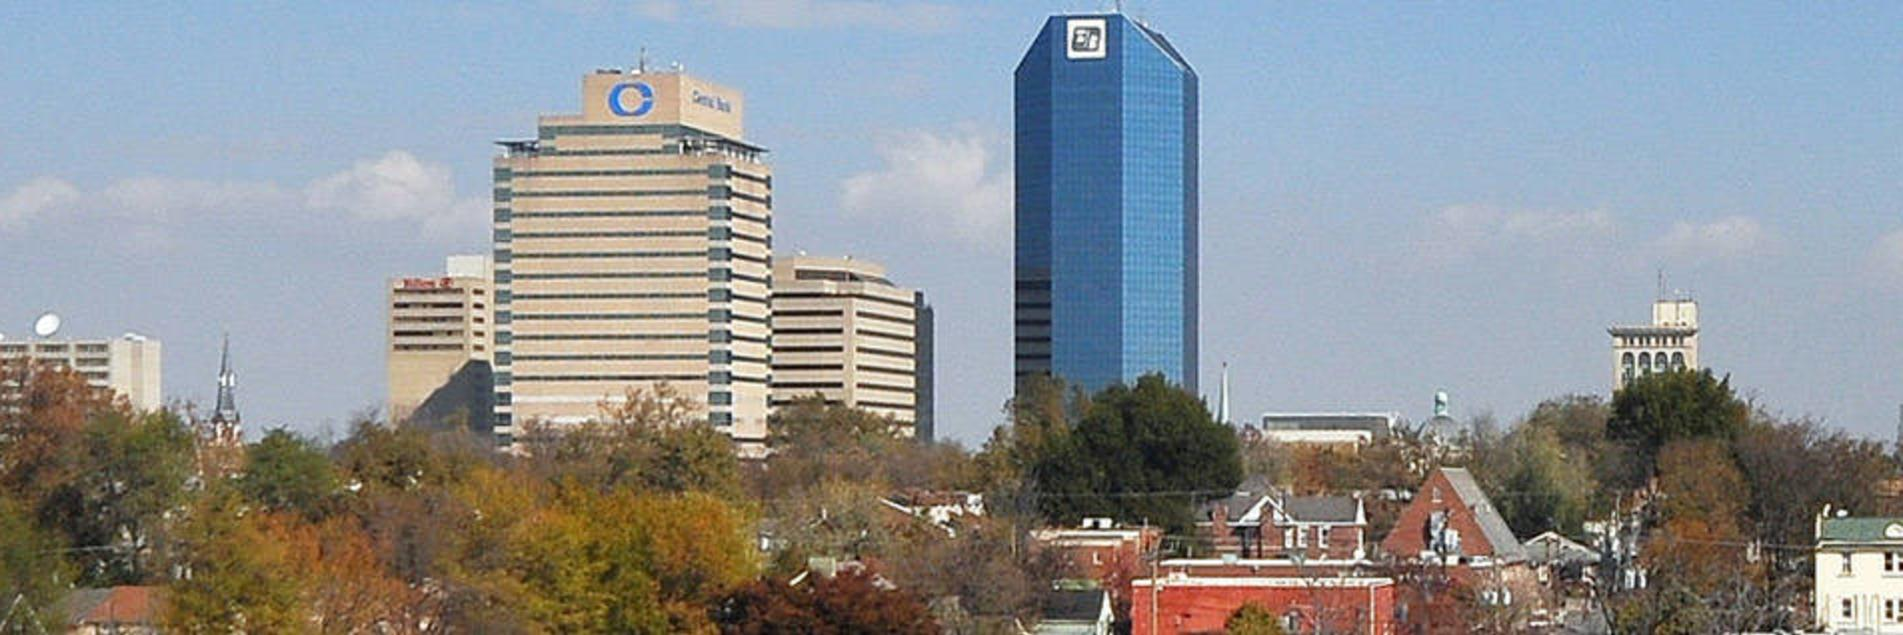 Lexington Skyline from the South